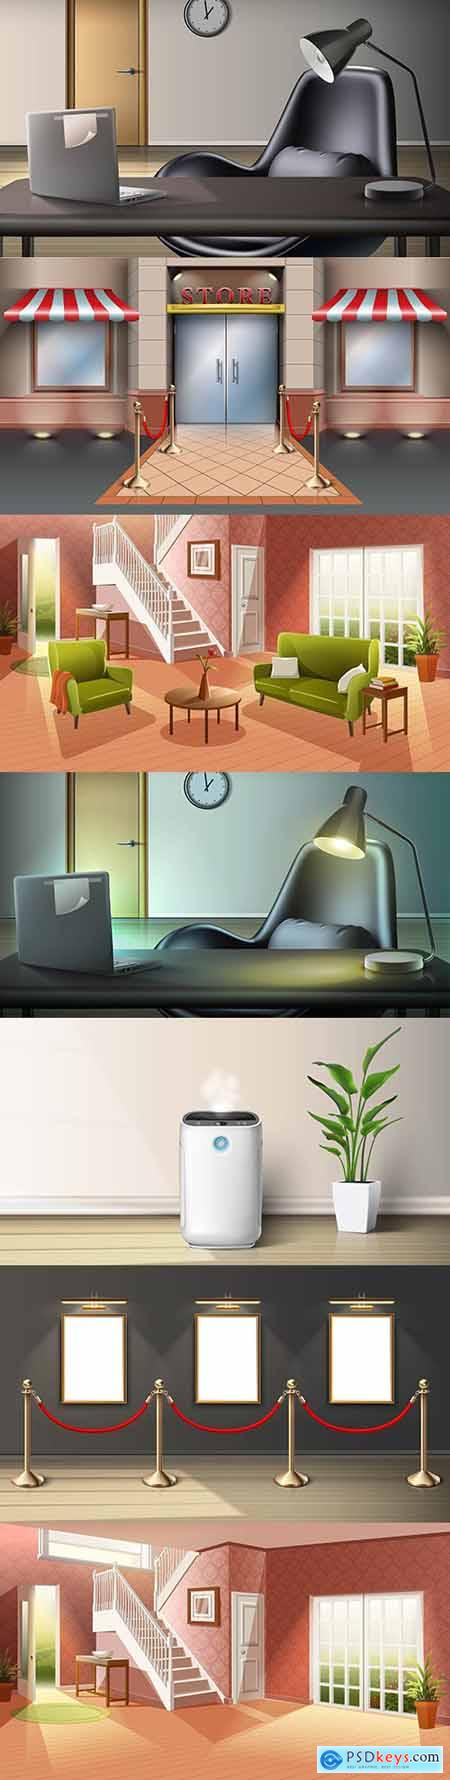 Room with interior and flowers realistic illustrations